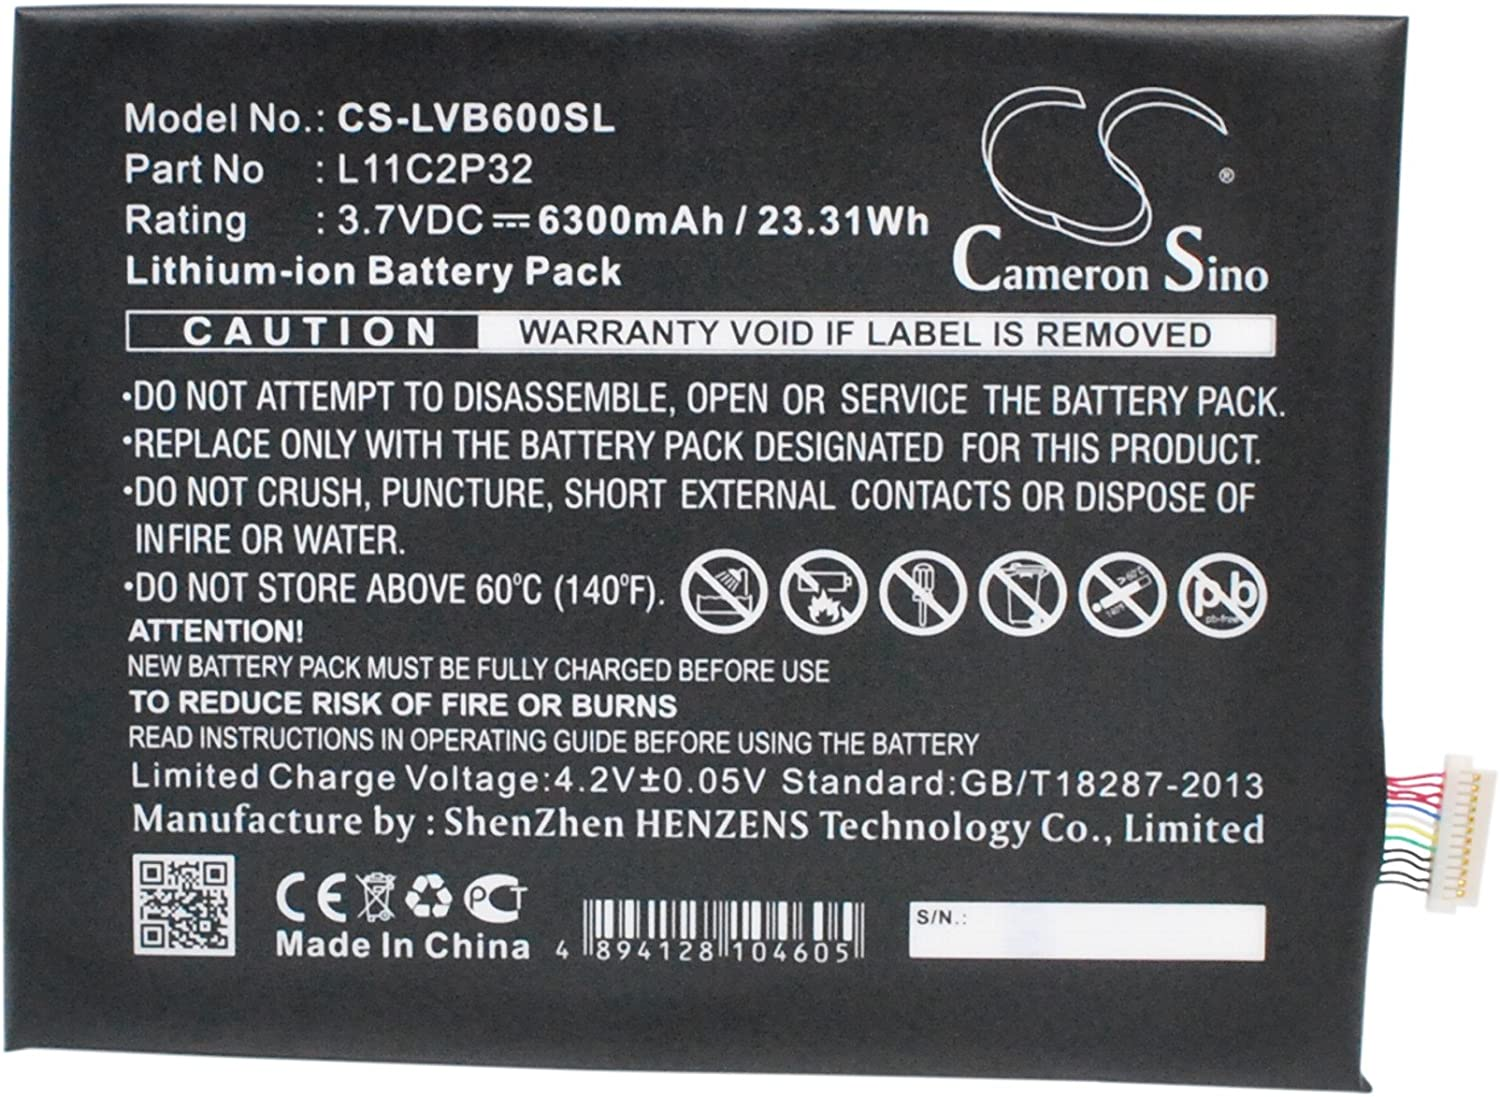 6300mAh Replacement for Lenovo IdeaTab S600H Battery, P/N L11C2P32